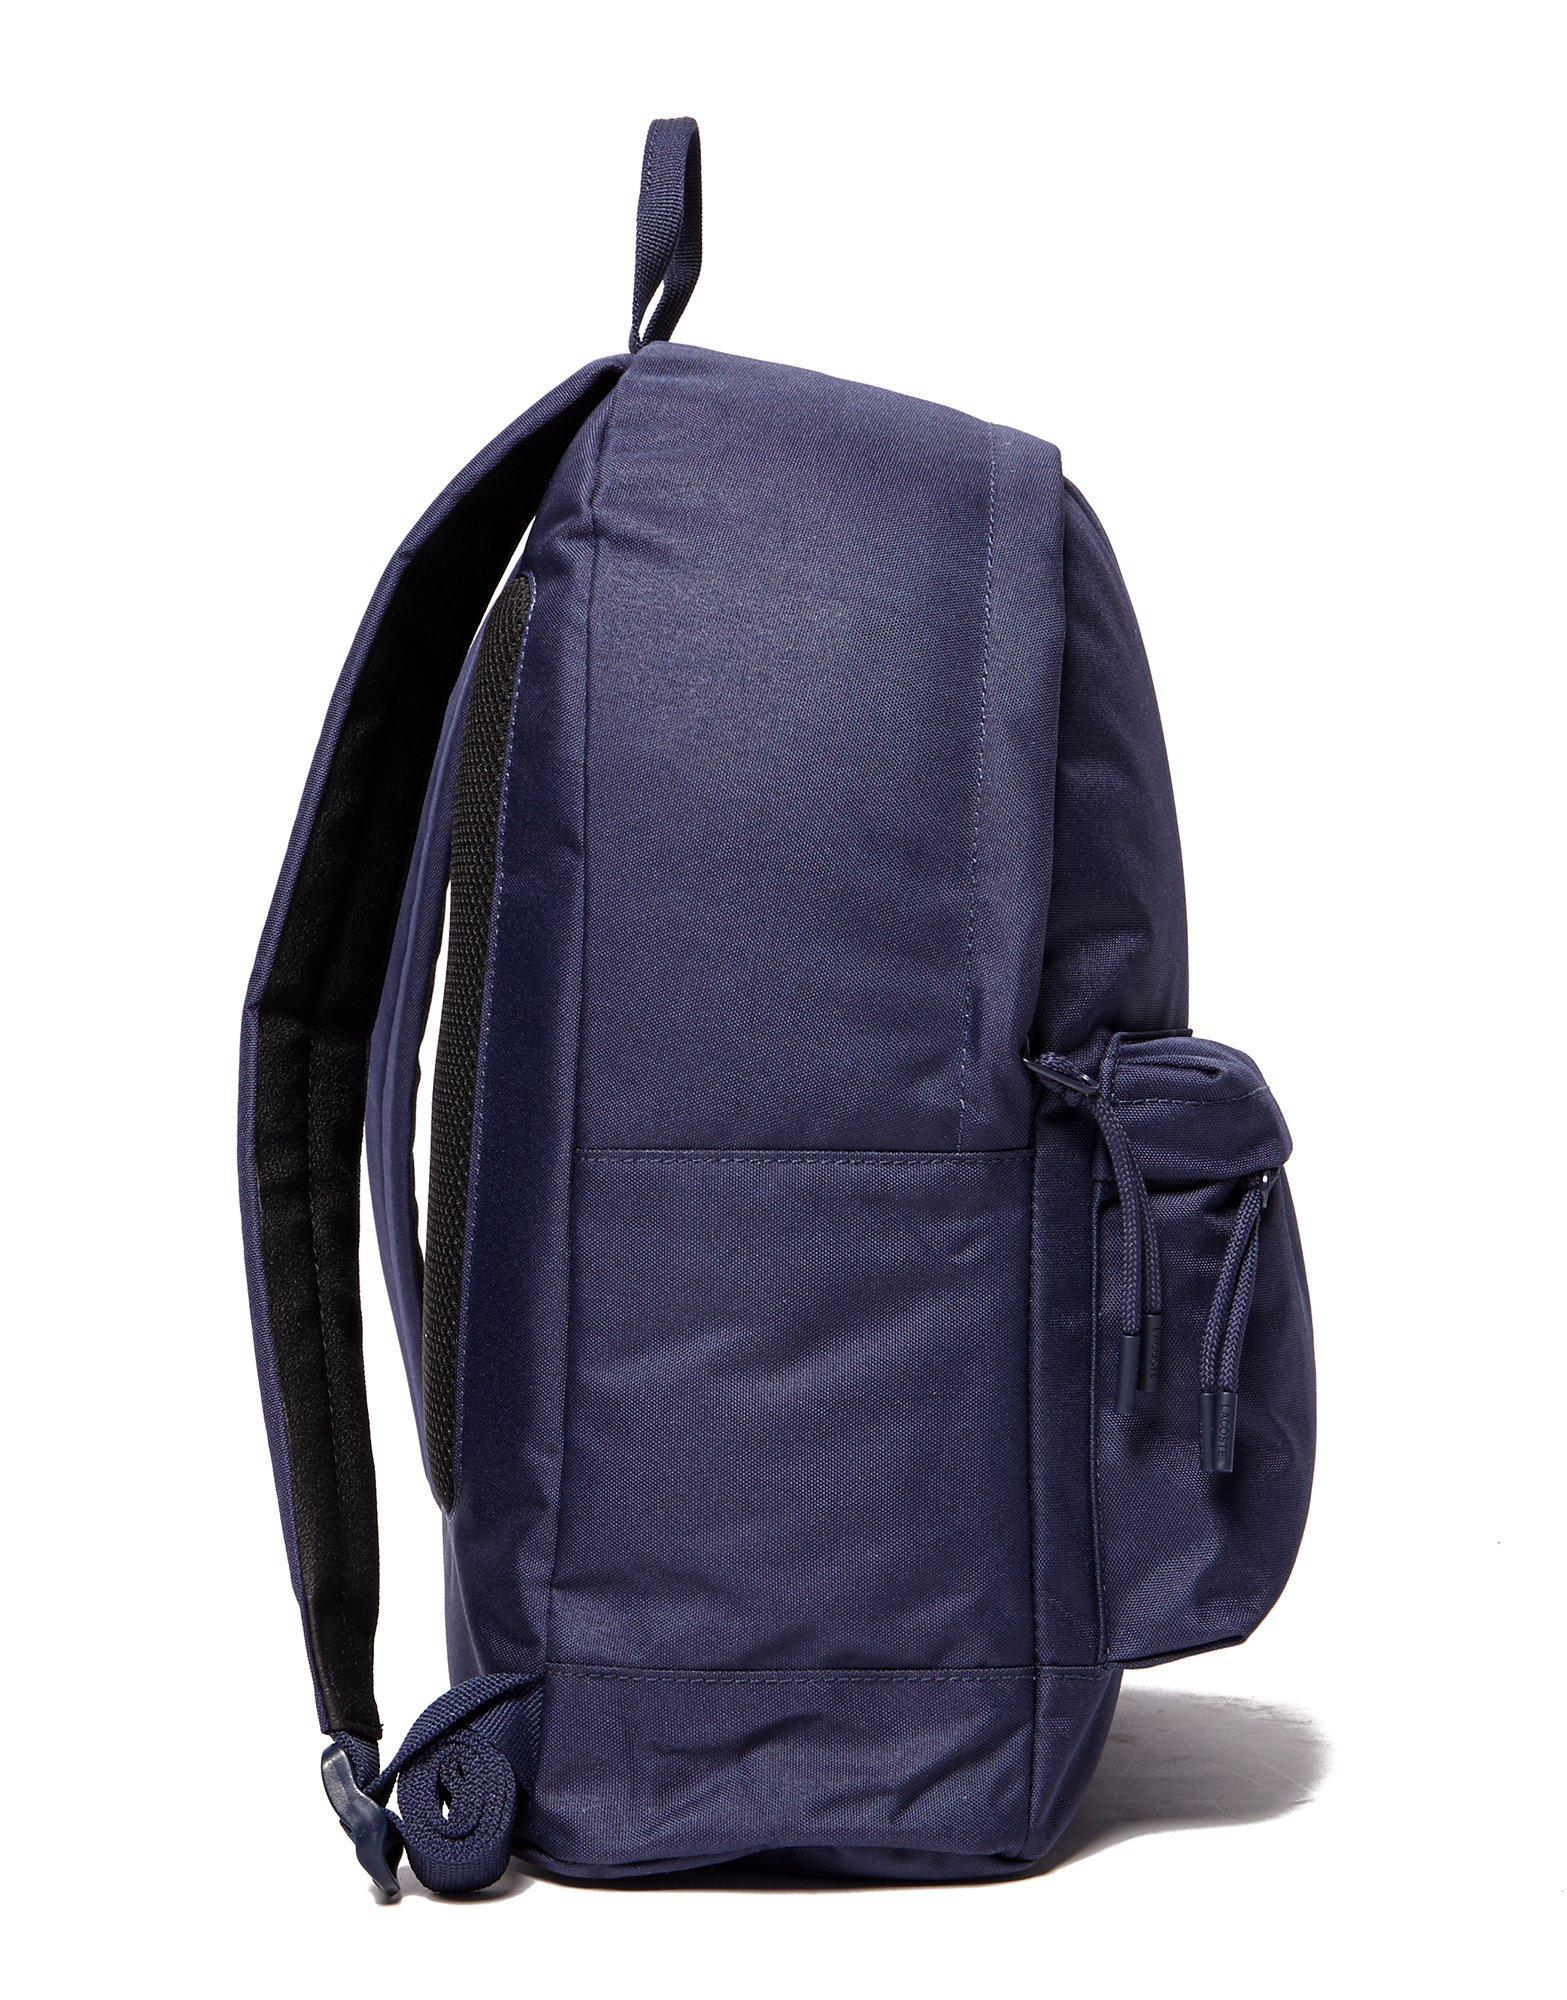 a13ffe6316 Images of Lacoste Backpack Women - #rock-cafe